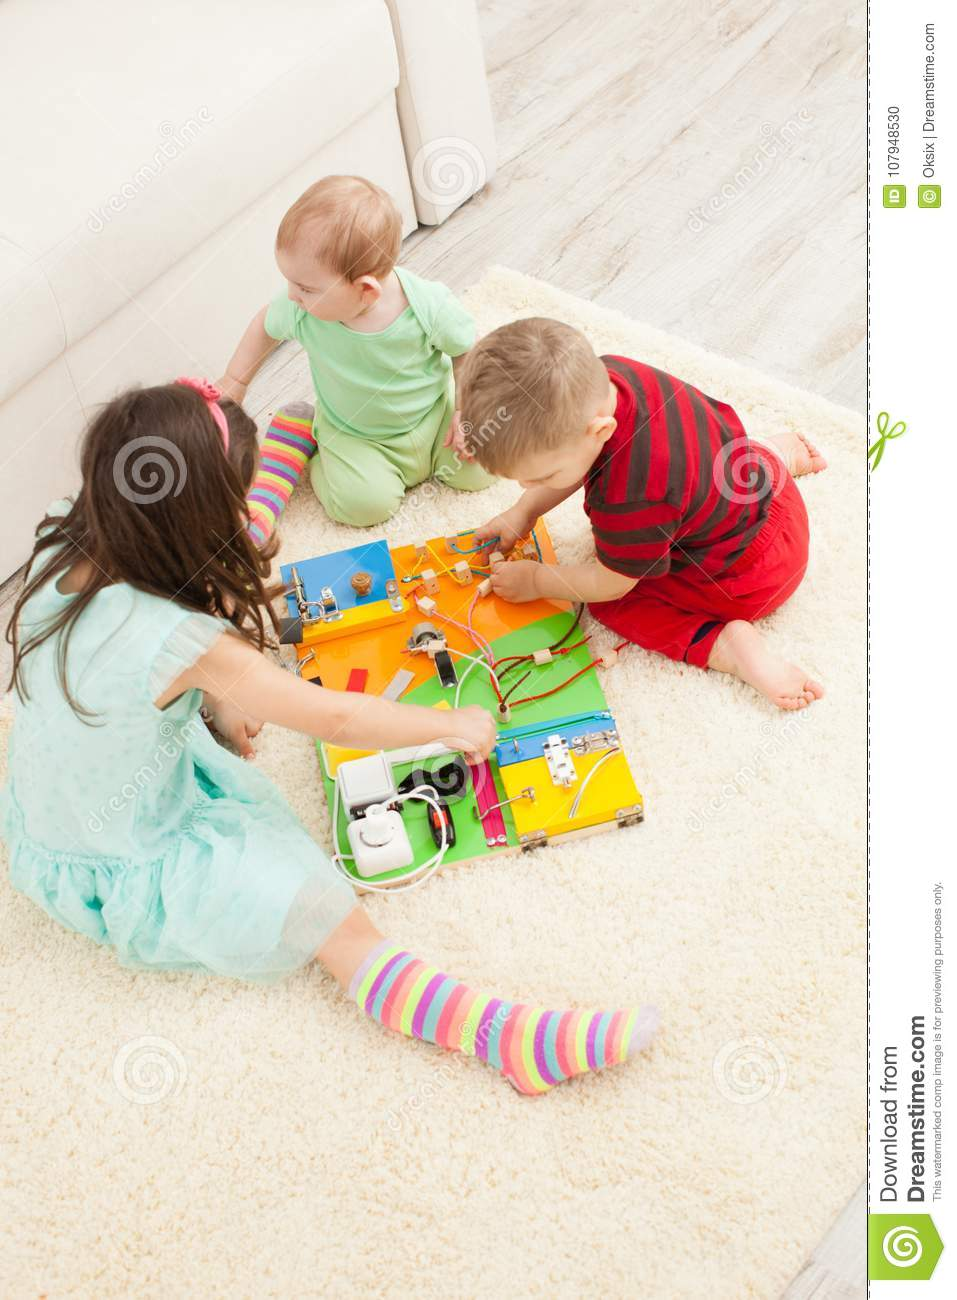 Diy Busy Board Stock Photo Image Of Children Gate 107948530